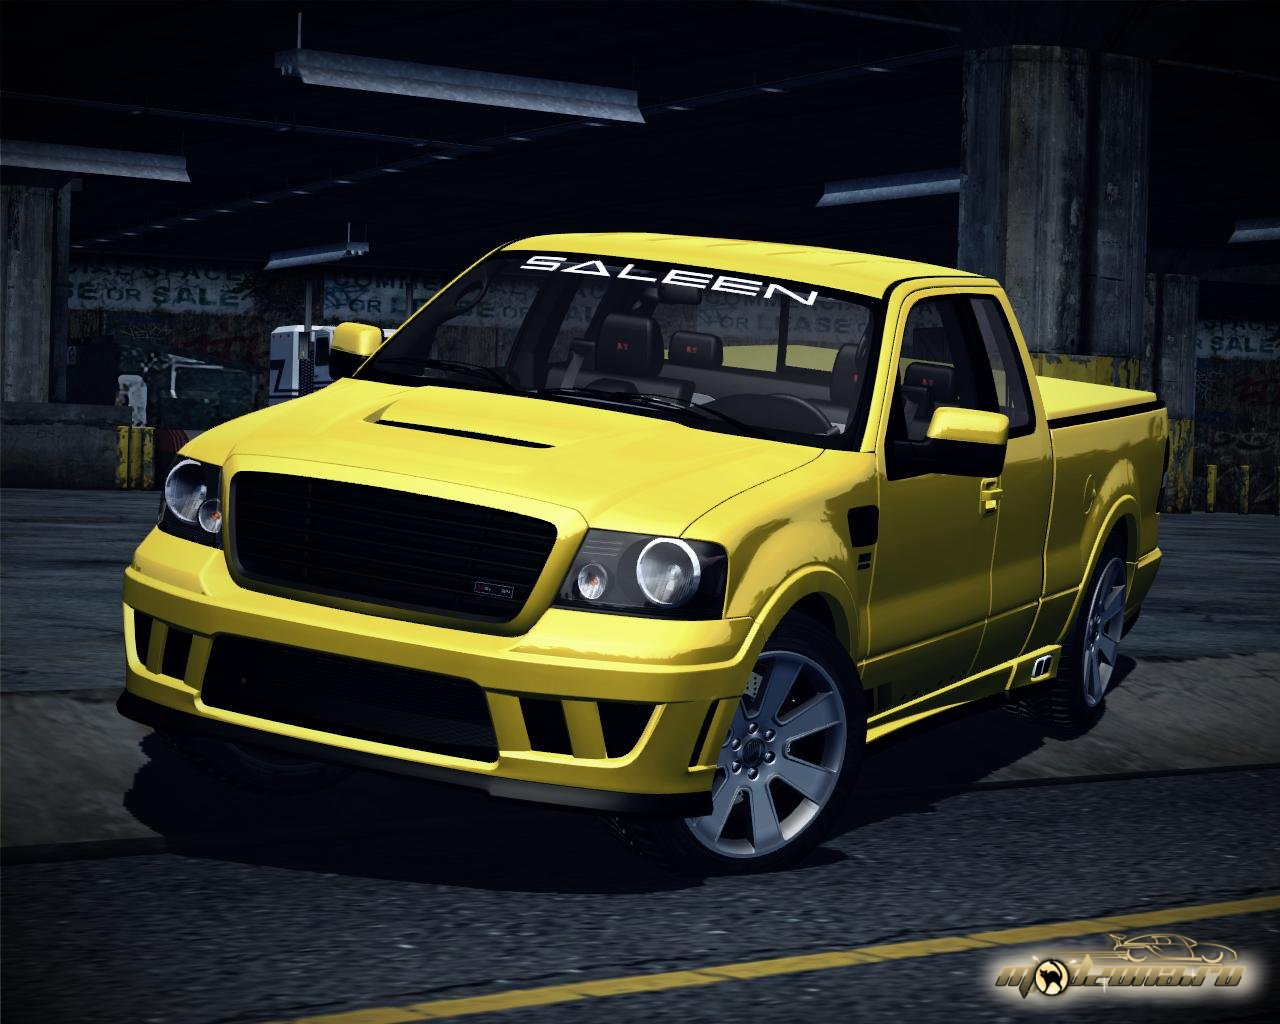 f 150 saleen s331 body kit autos post. Black Bedroom Furniture Sets. Home Design Ideas